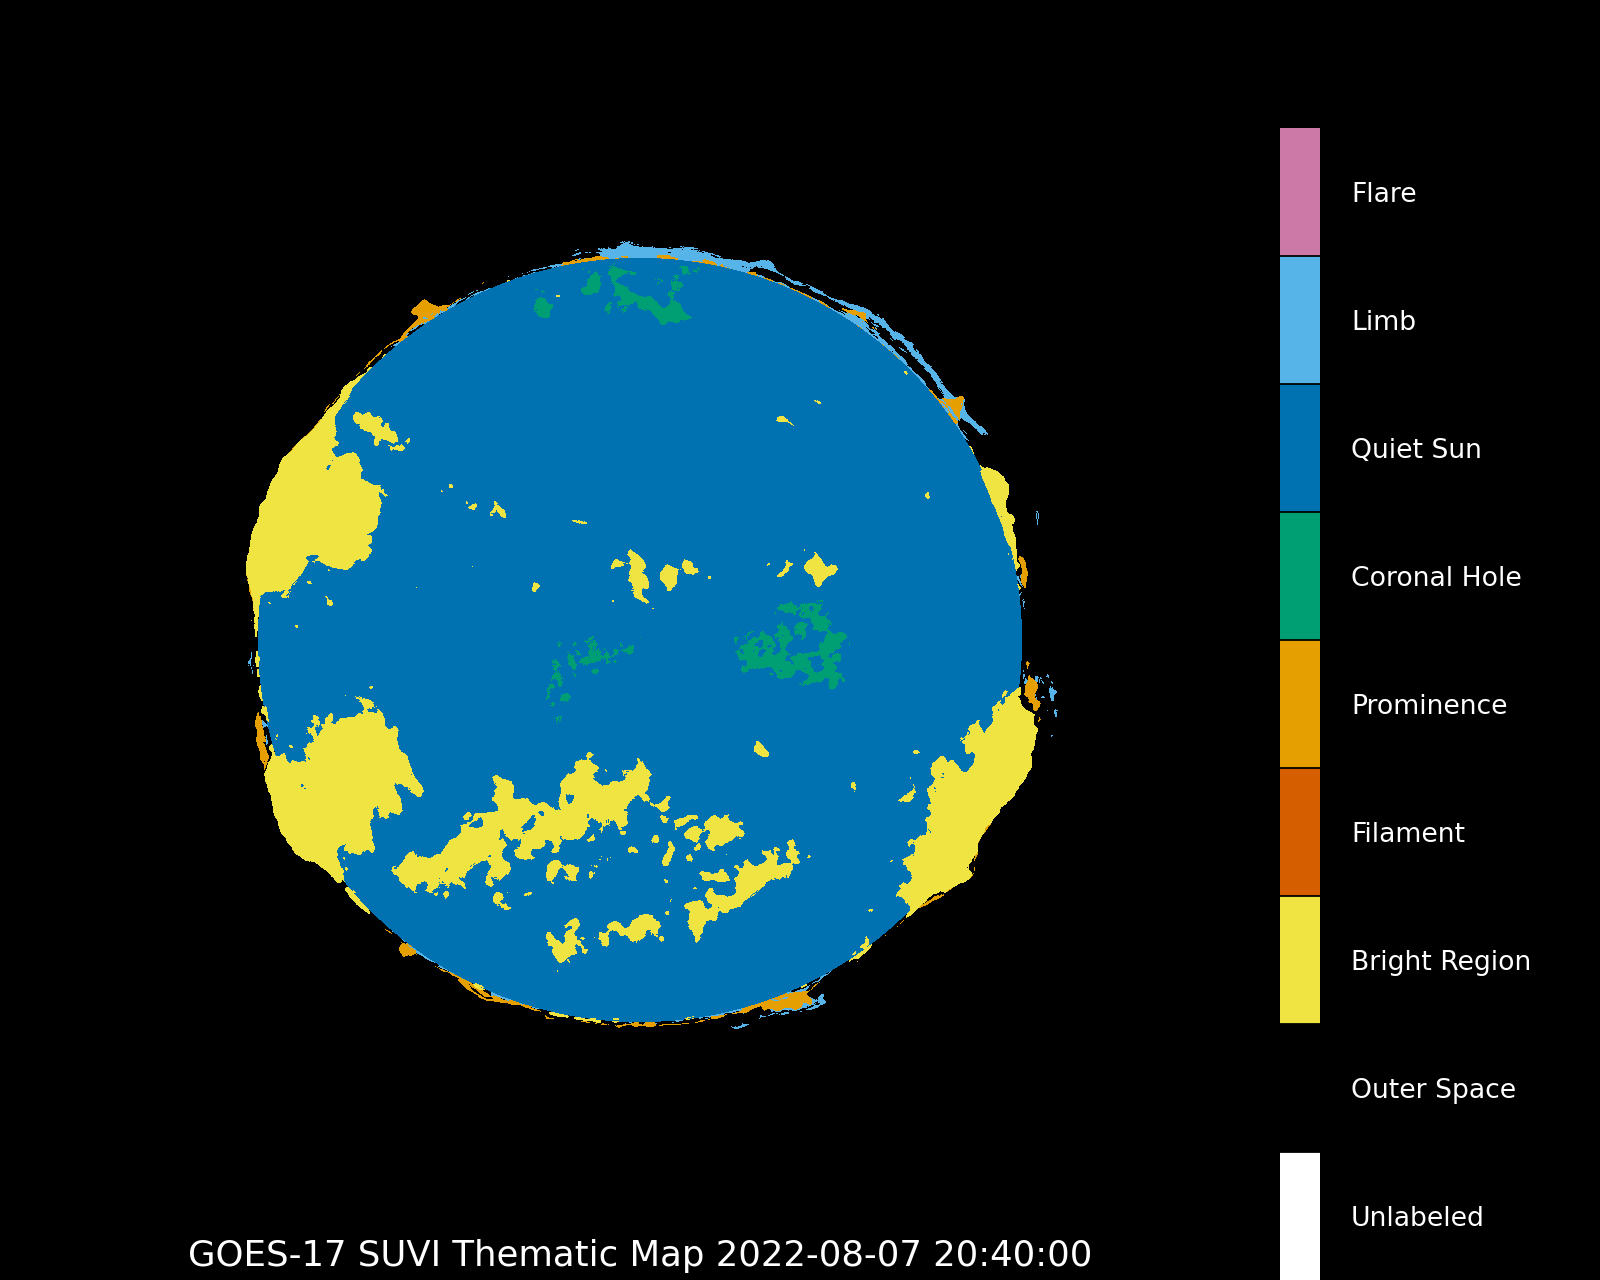 GOES-17 Thermatic map